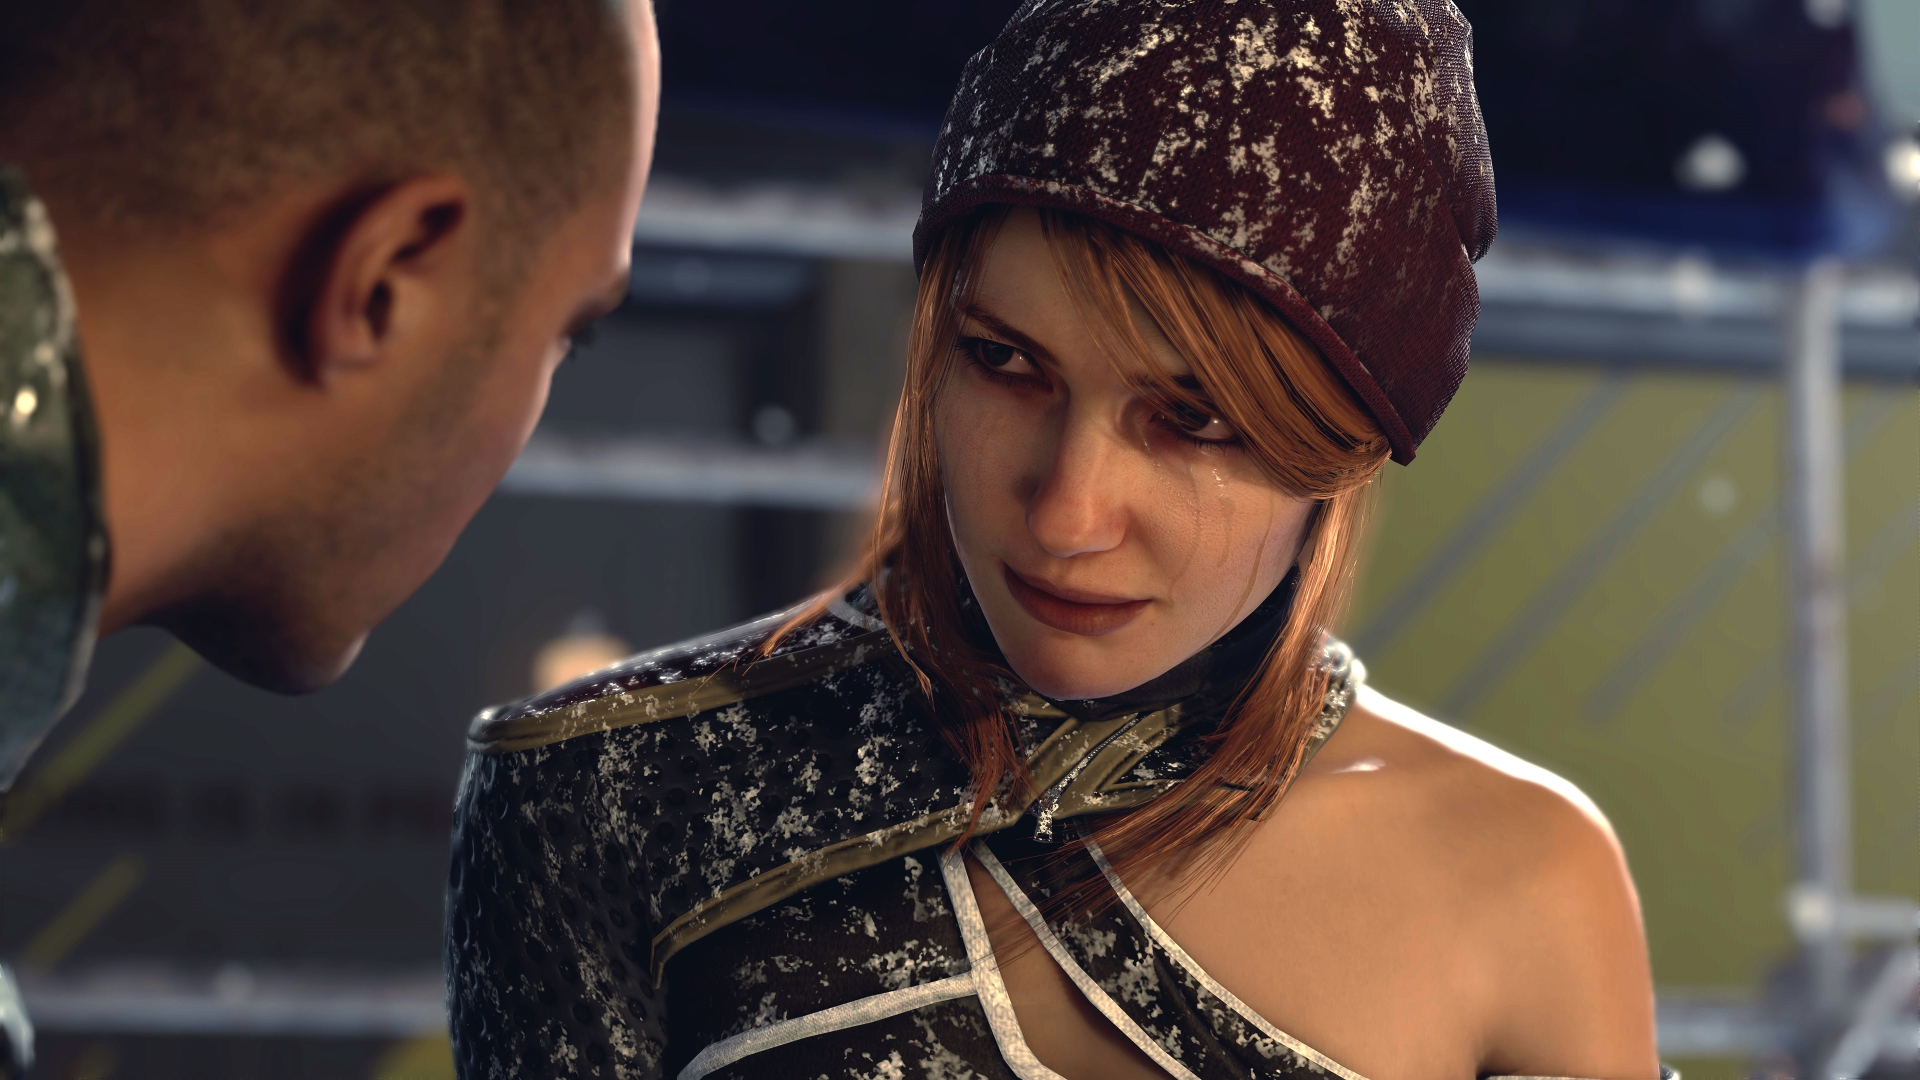 Detroit: Become Human - controversial in more ways than one